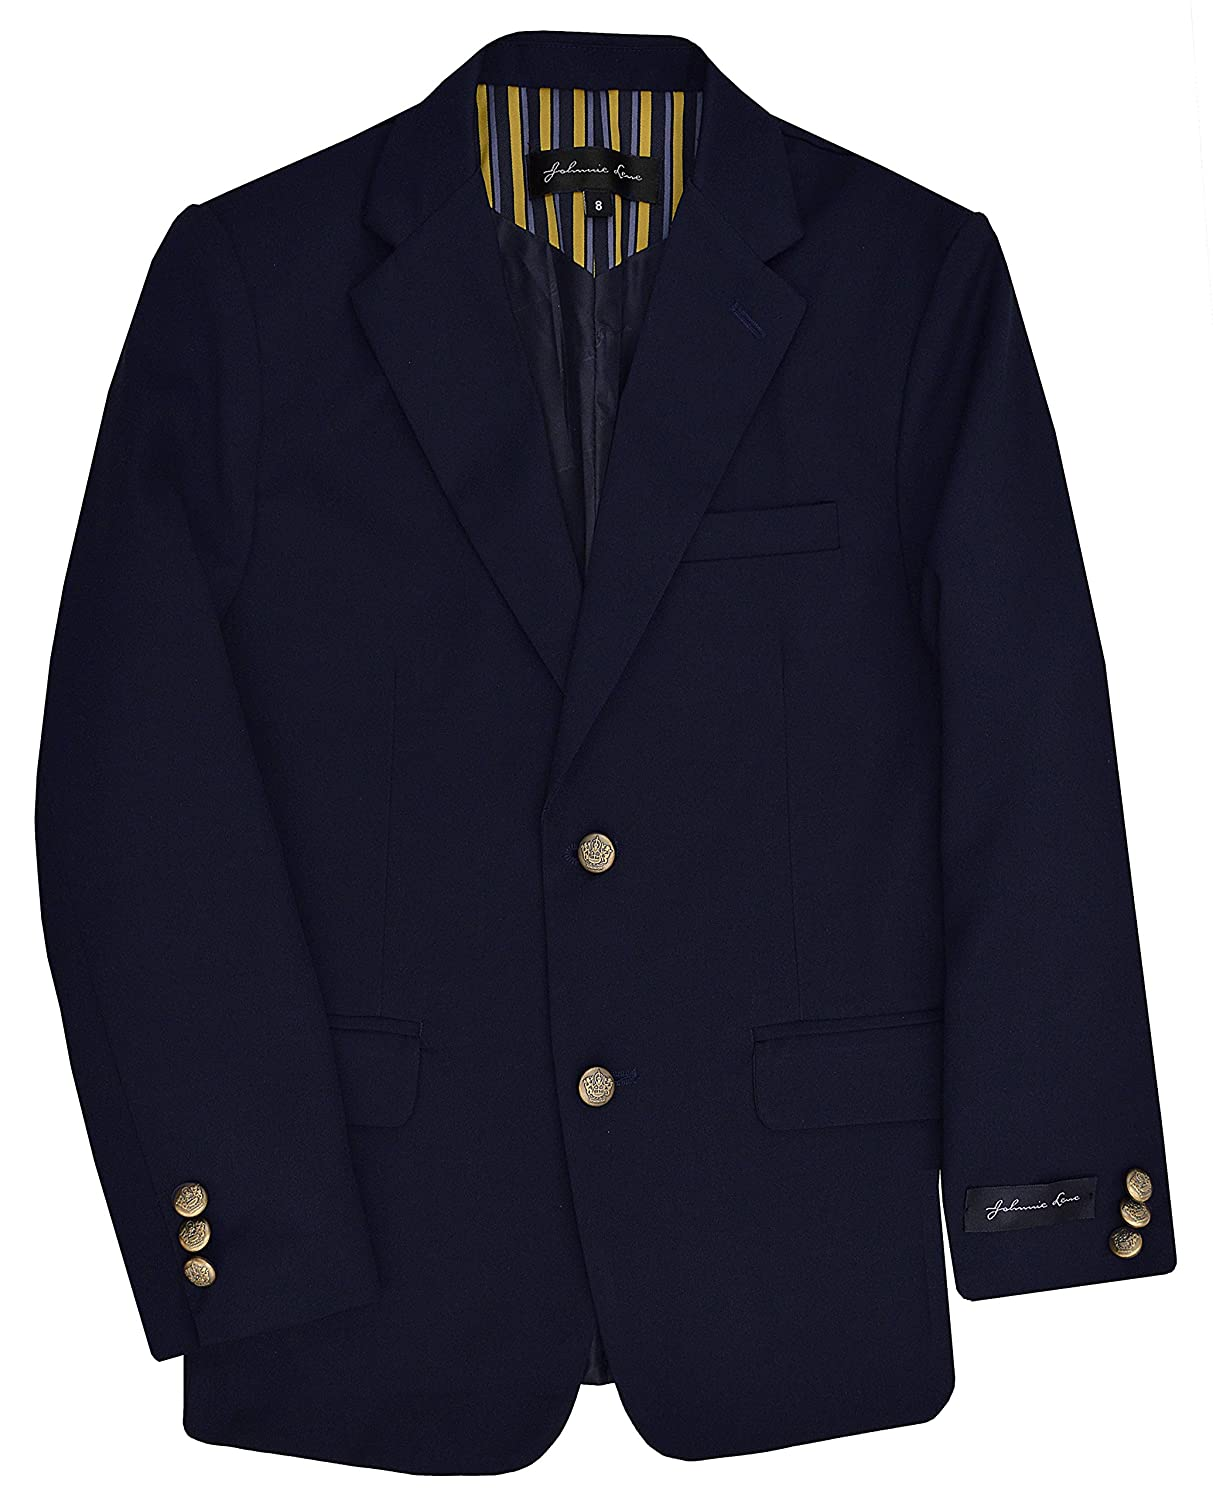 Johnnie Lene Dress Up Boys Blazer Jacket